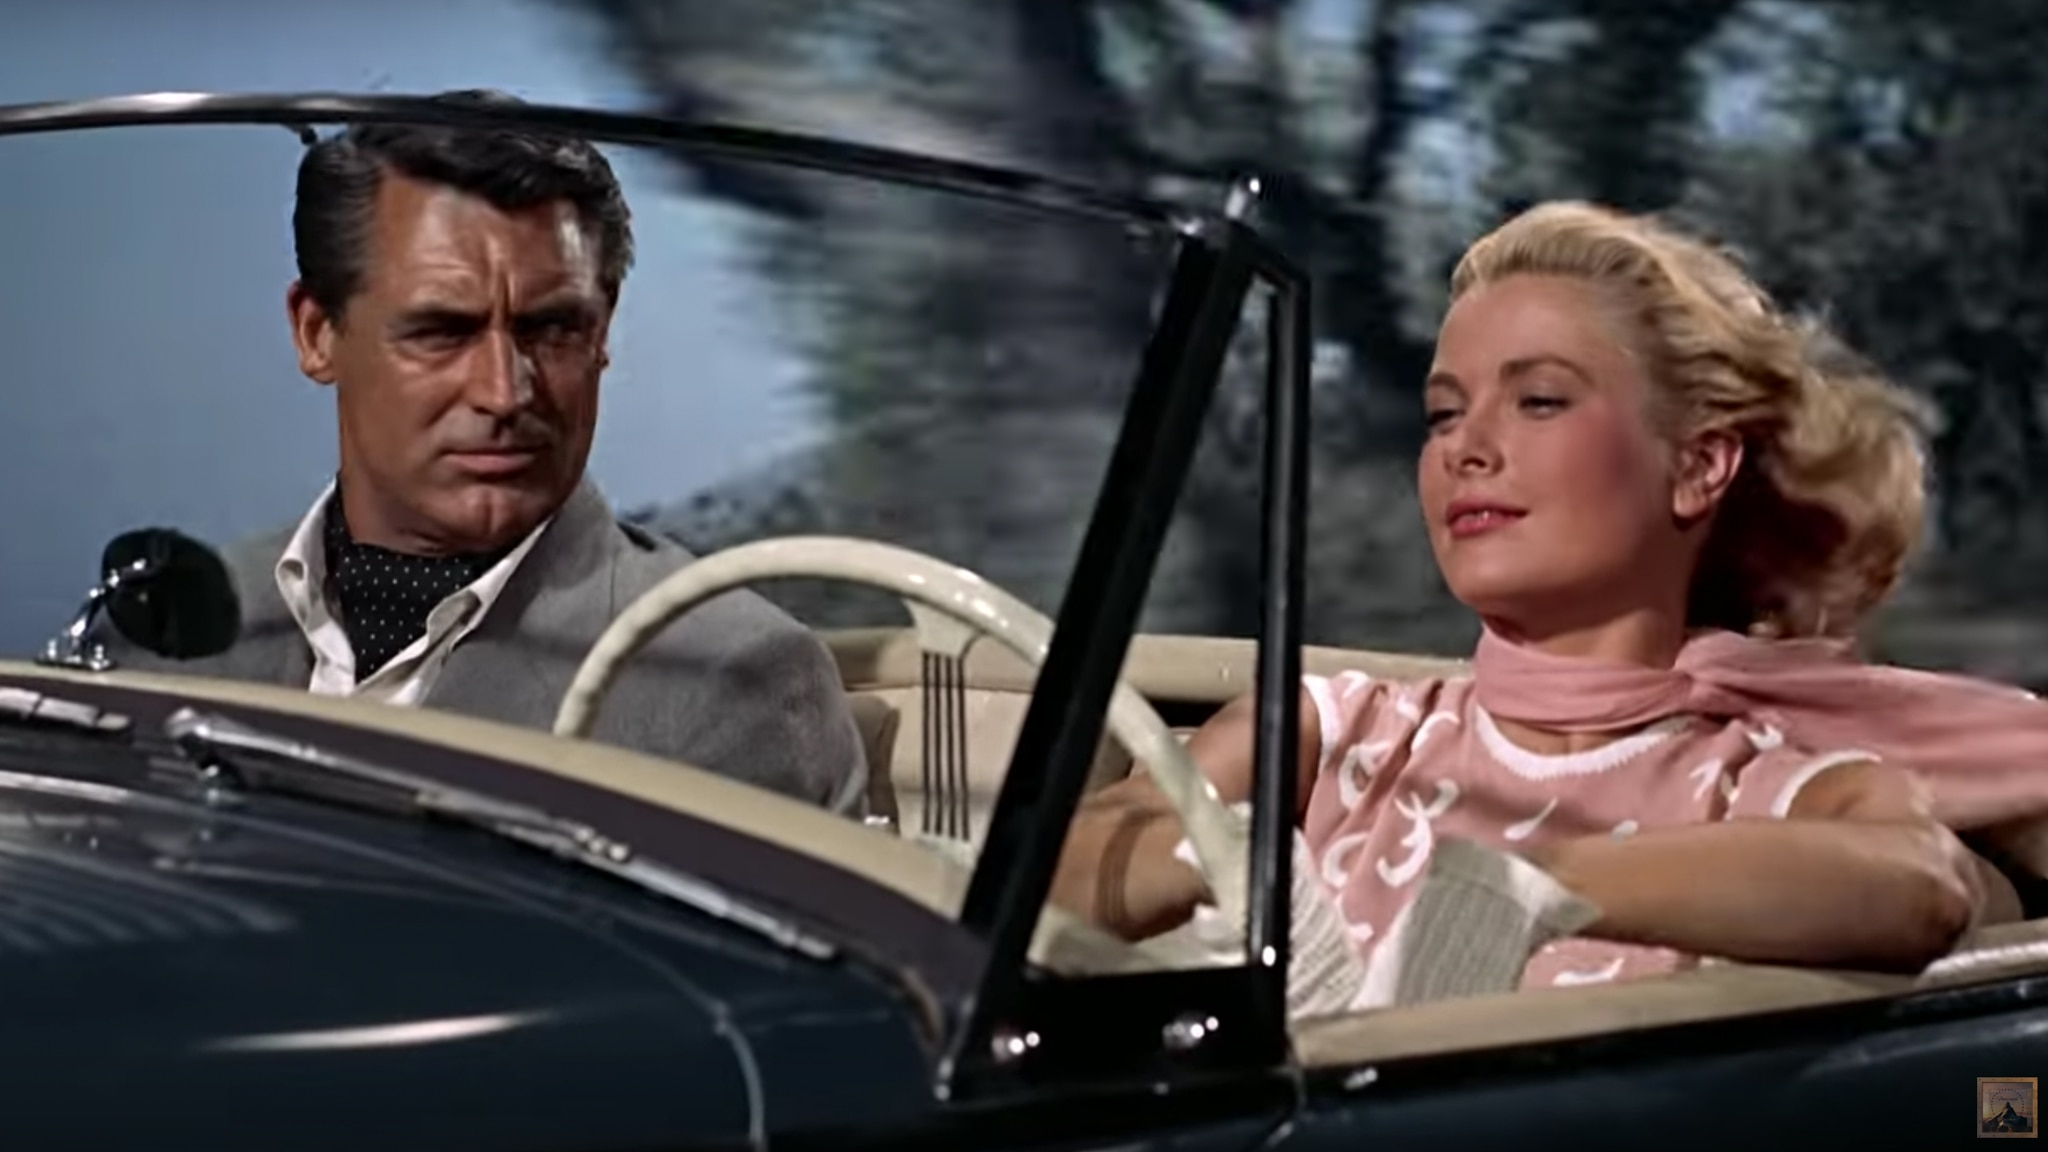 Seven Of The Most Memorable Cars In Classic Films